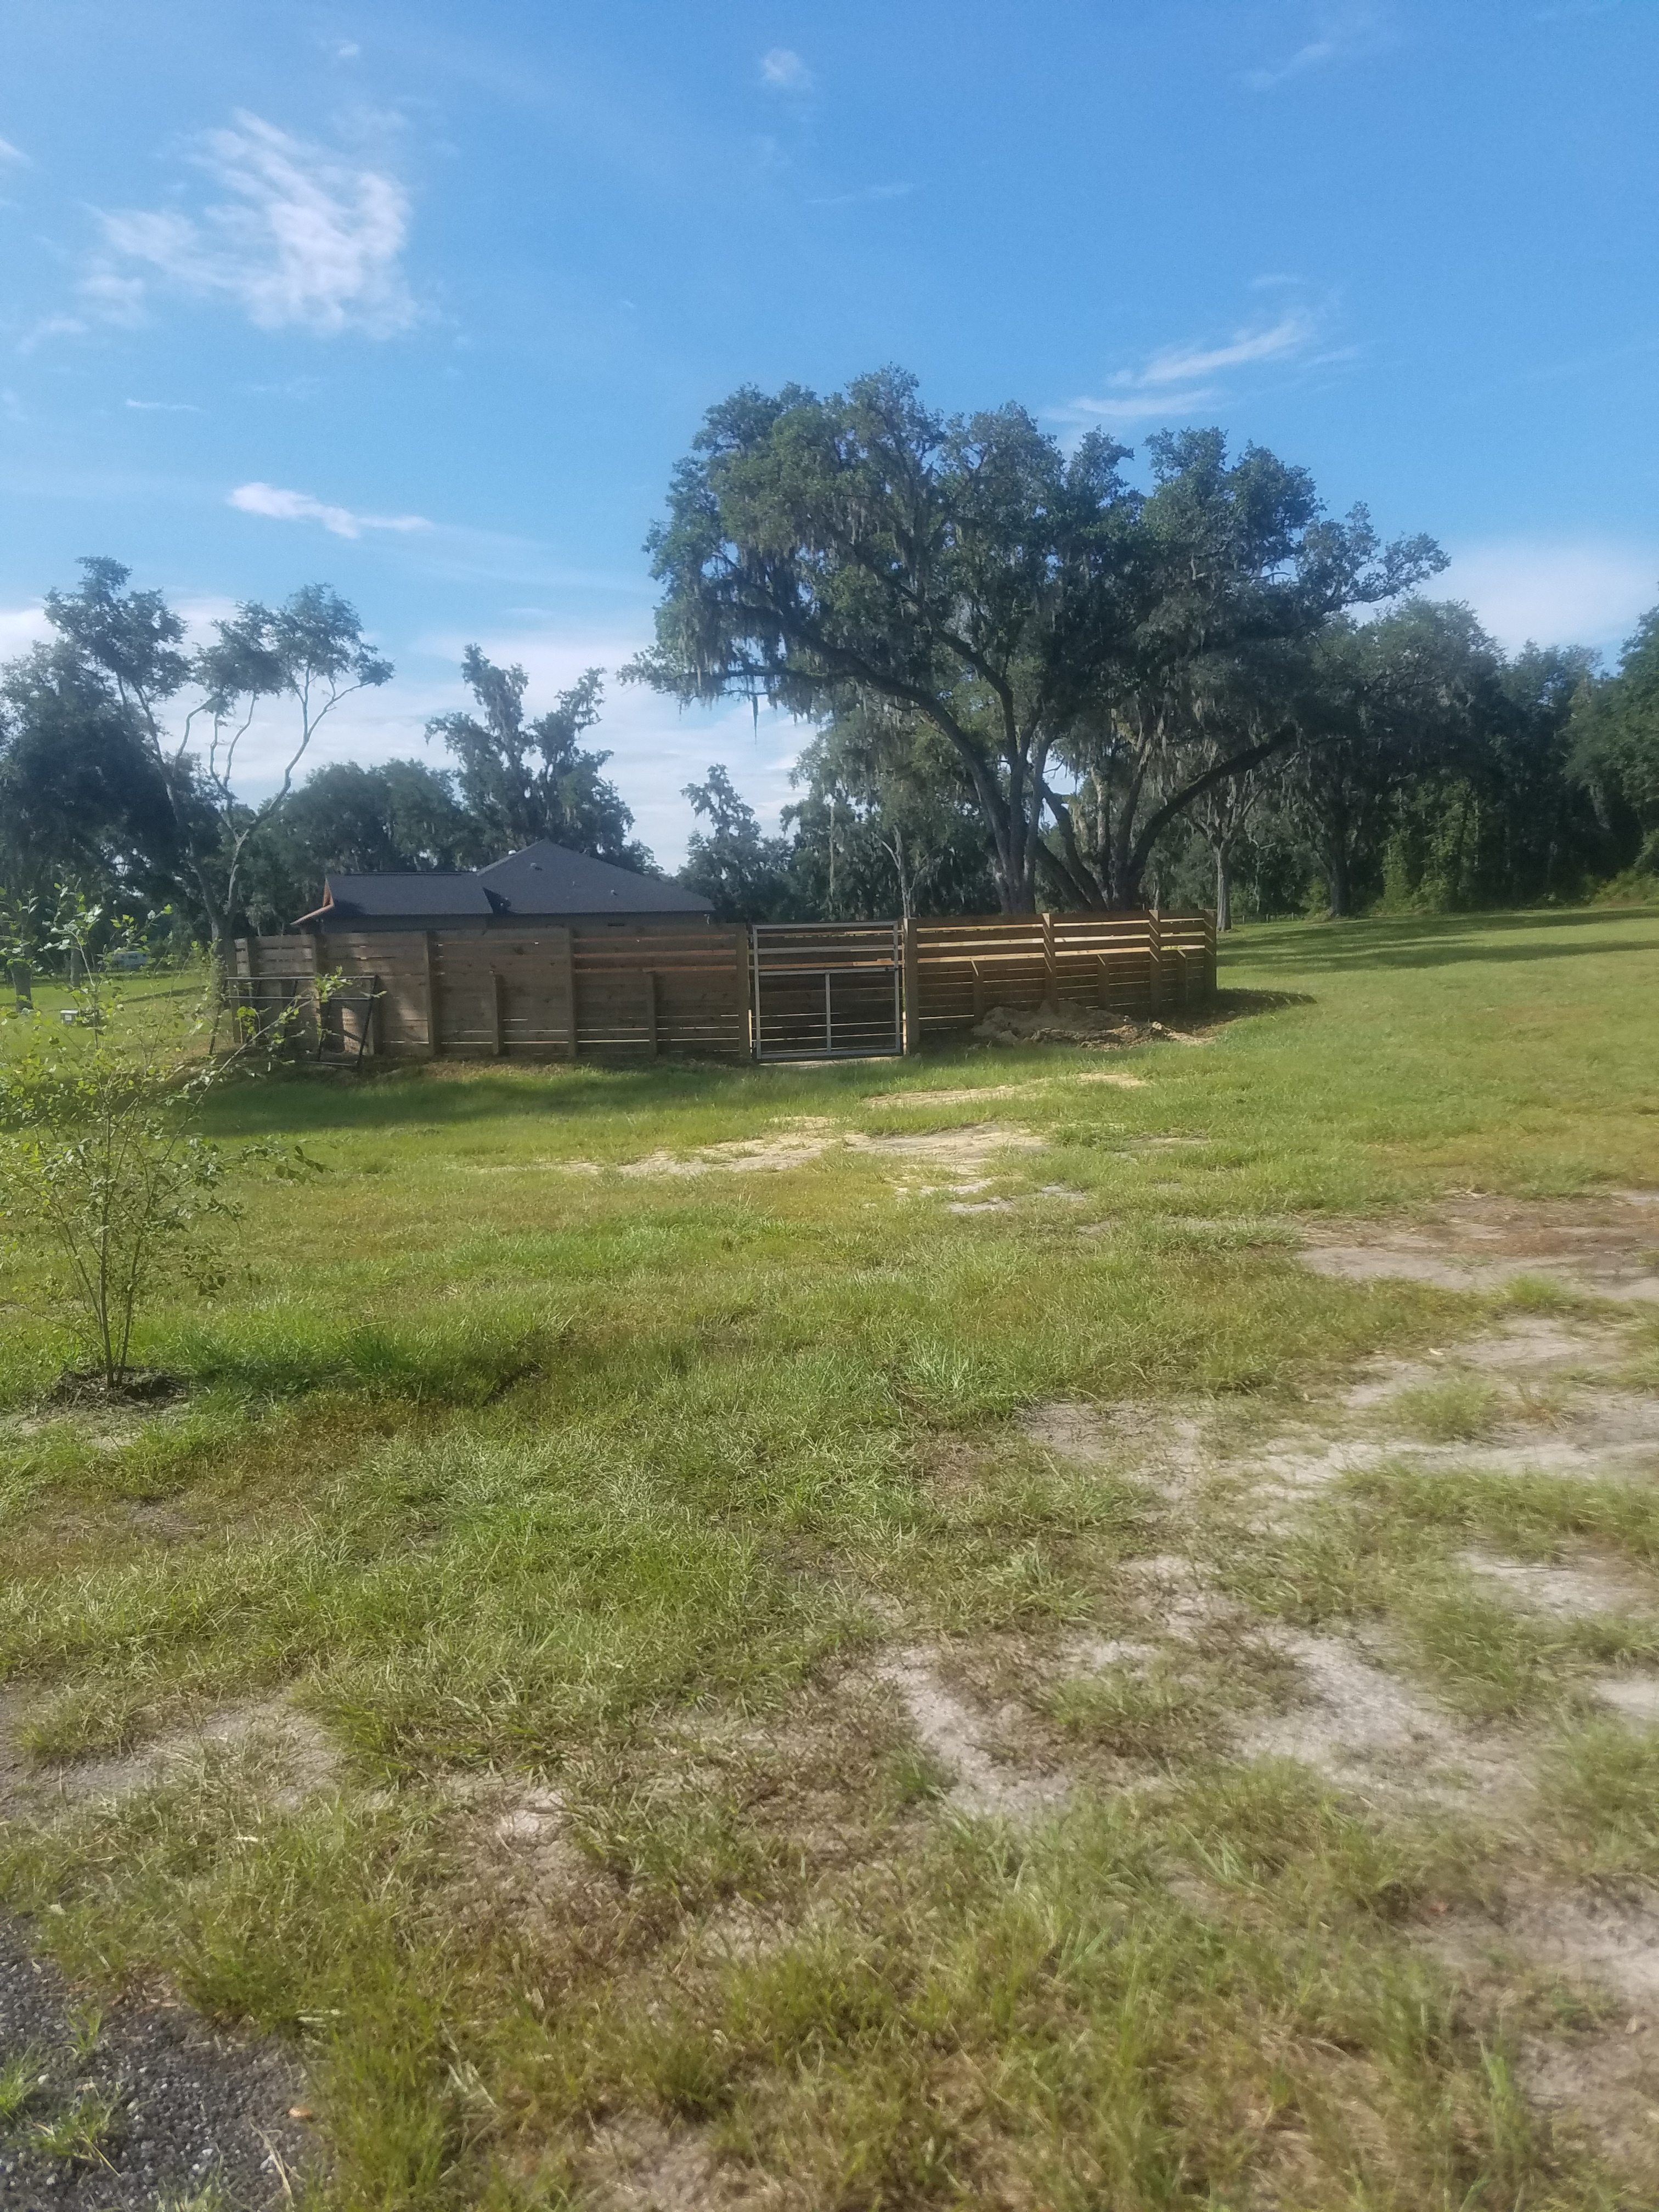 premier horse boarding facility located in the heart of Northwest Ocala. Just minutes from the World Equestrian Center and HITS!